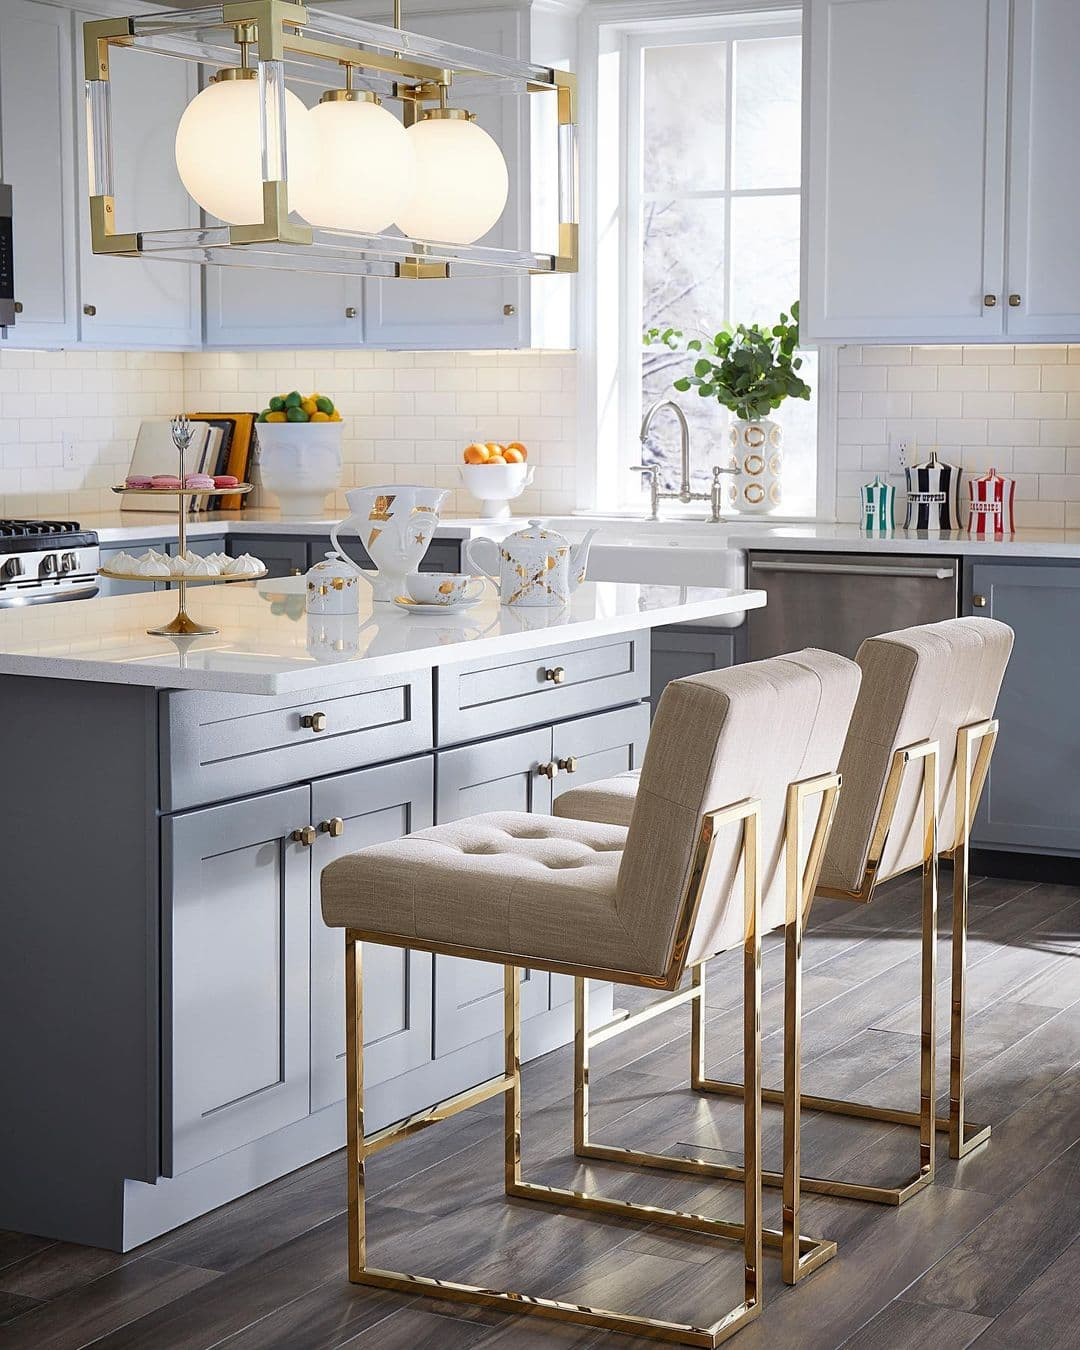 this is a kitchen by jonathan adler showing mixing metals